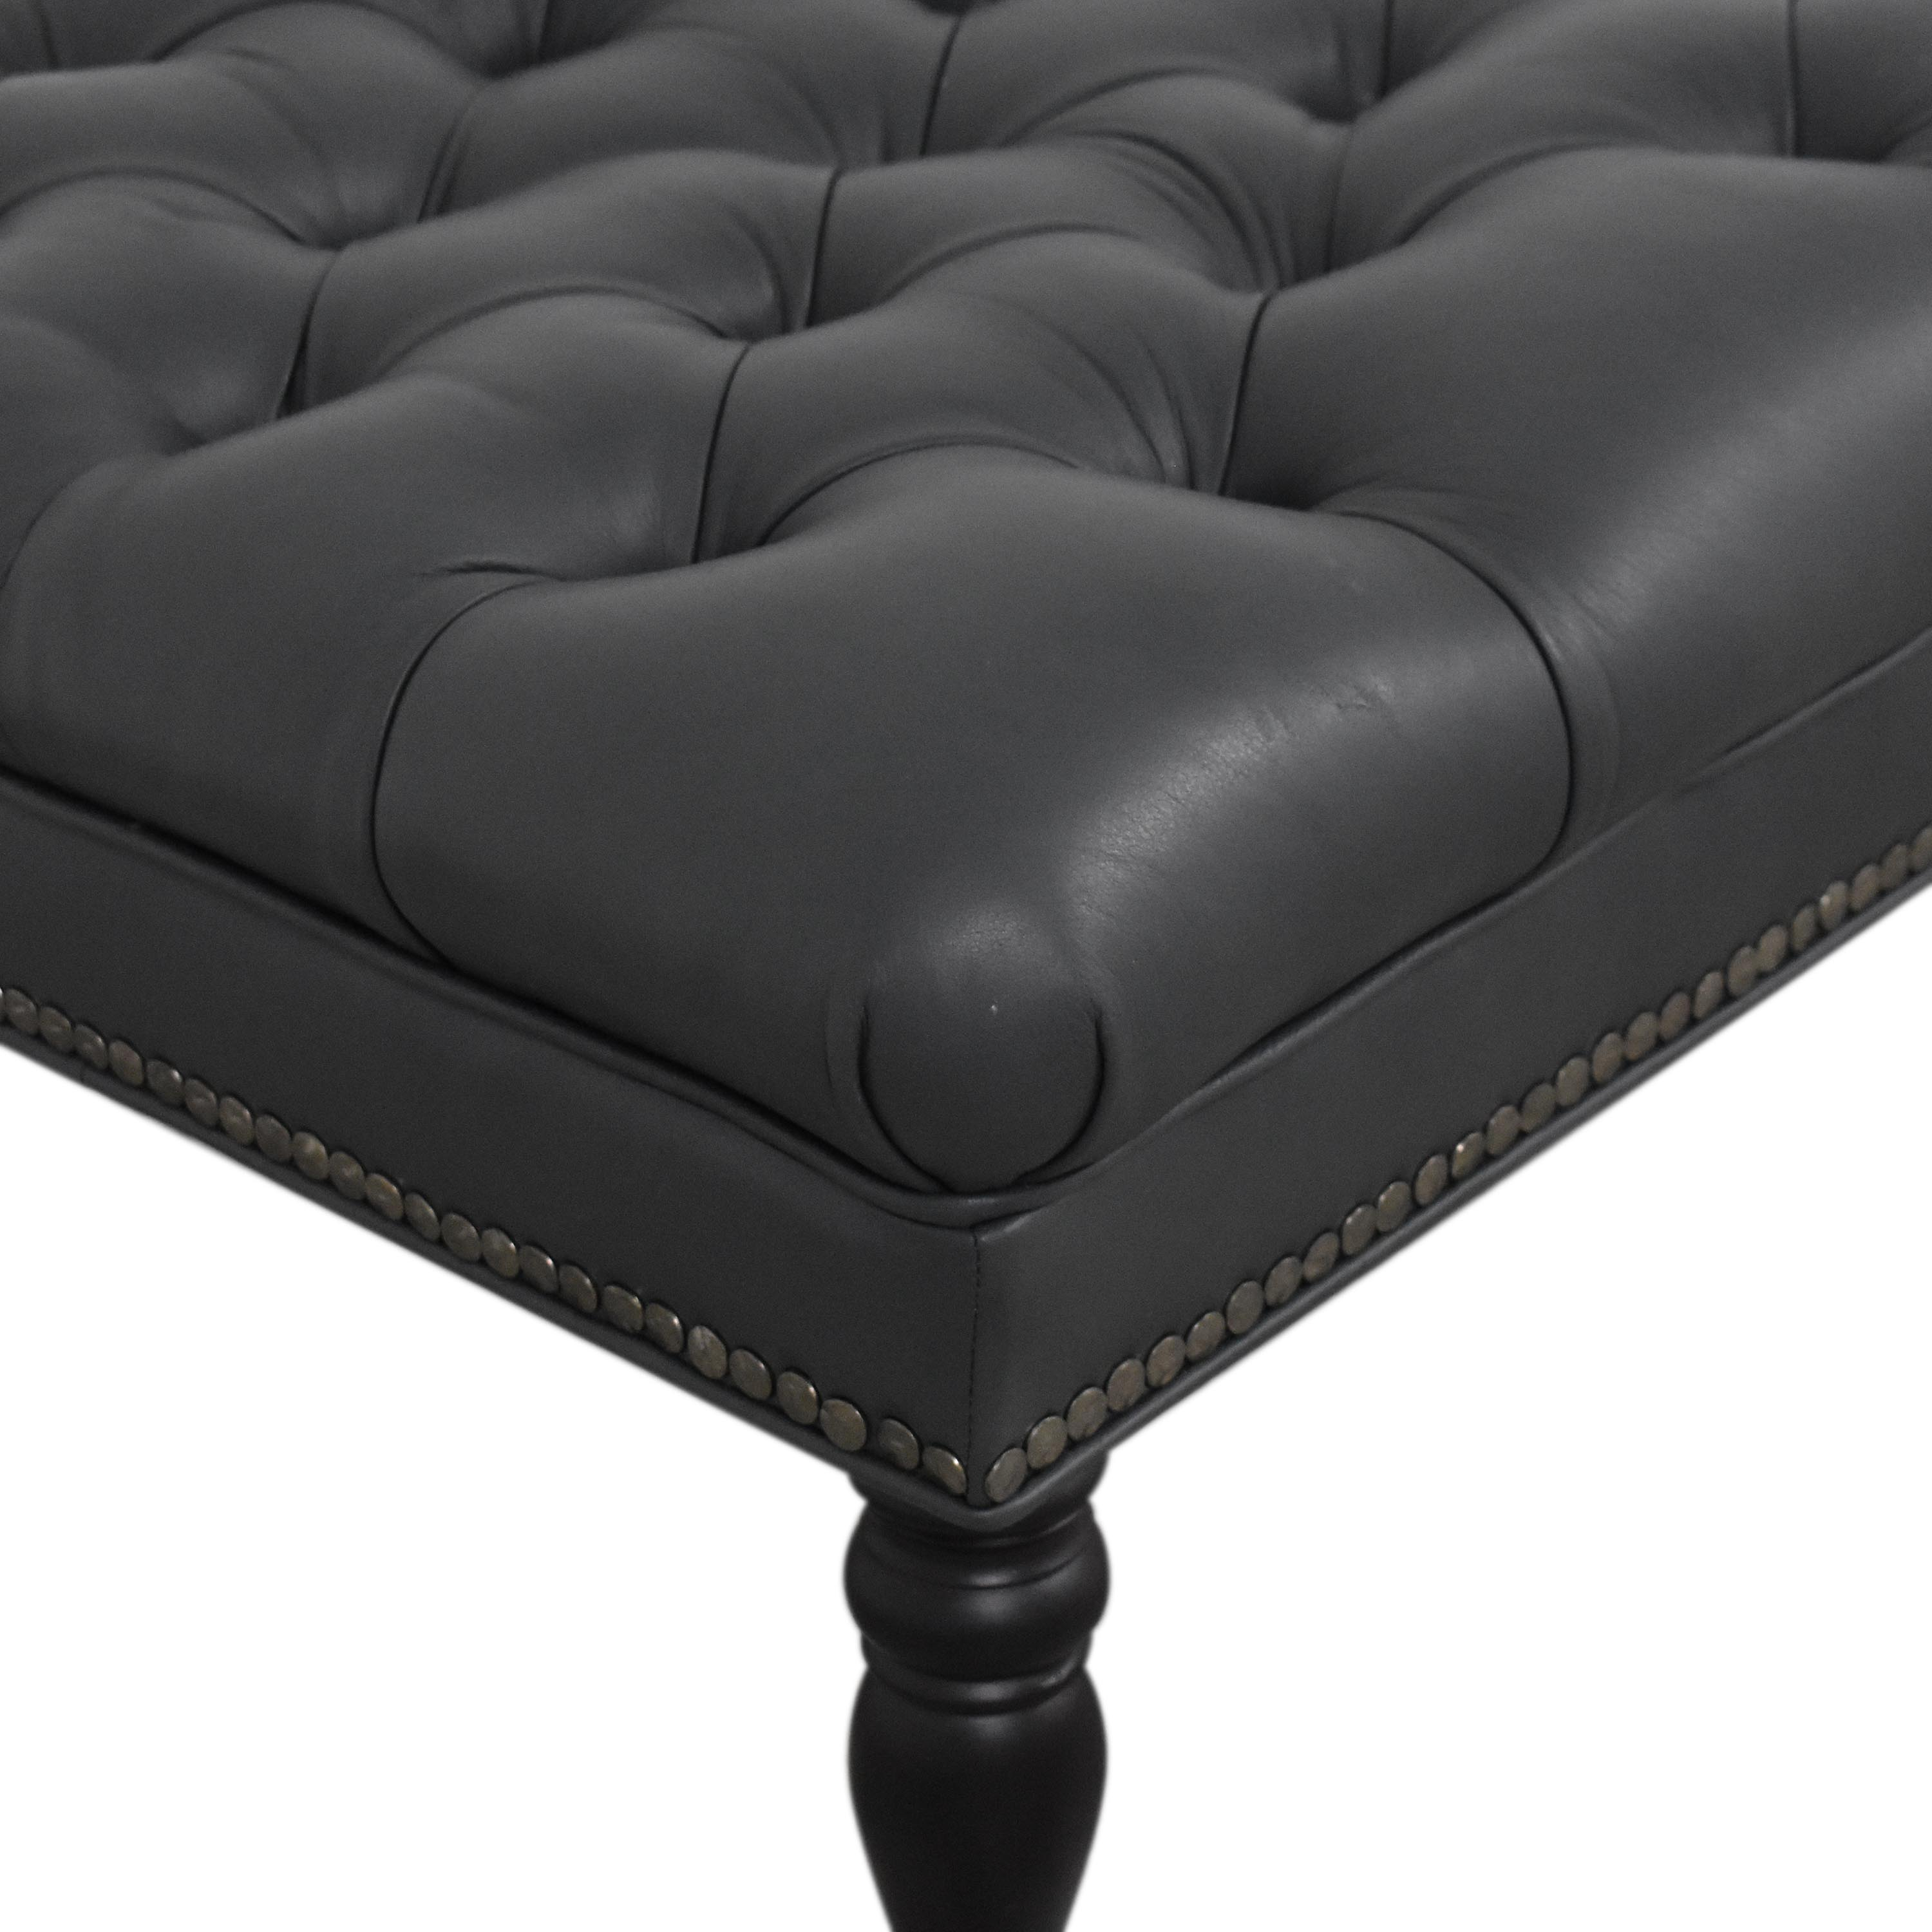 Tufted Bench Ottoman on sale